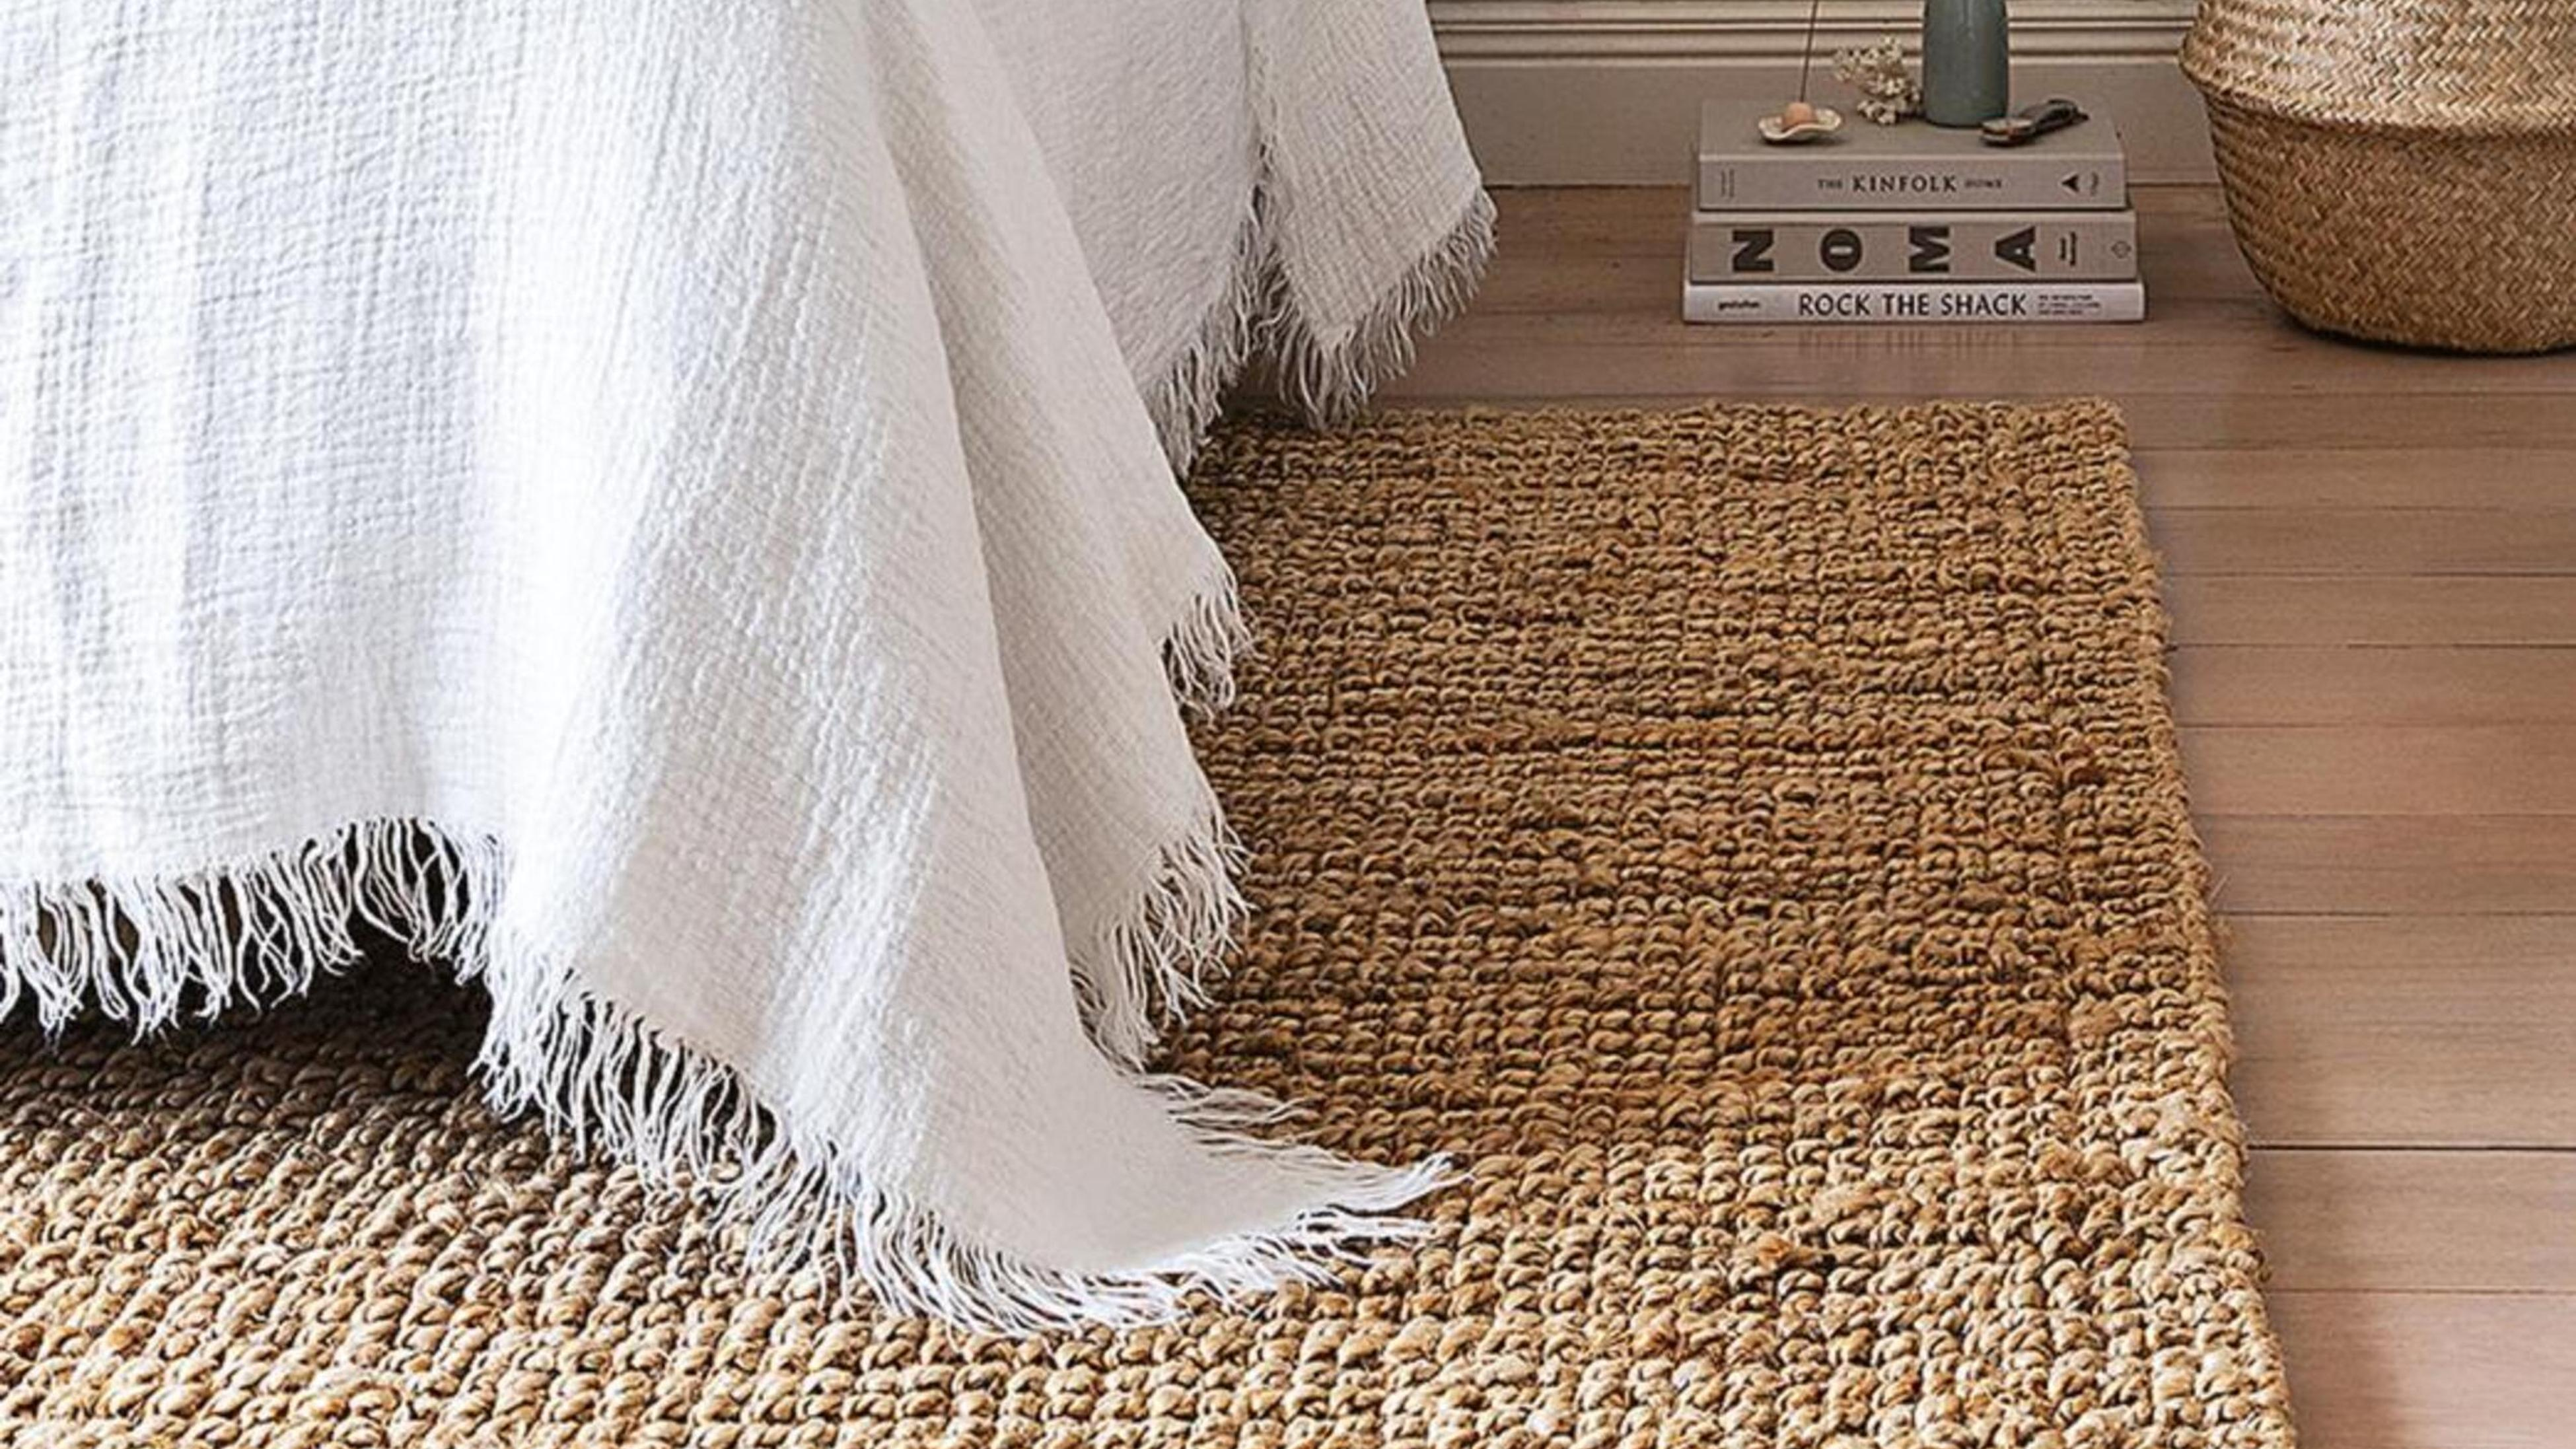 Bed on top of rug.